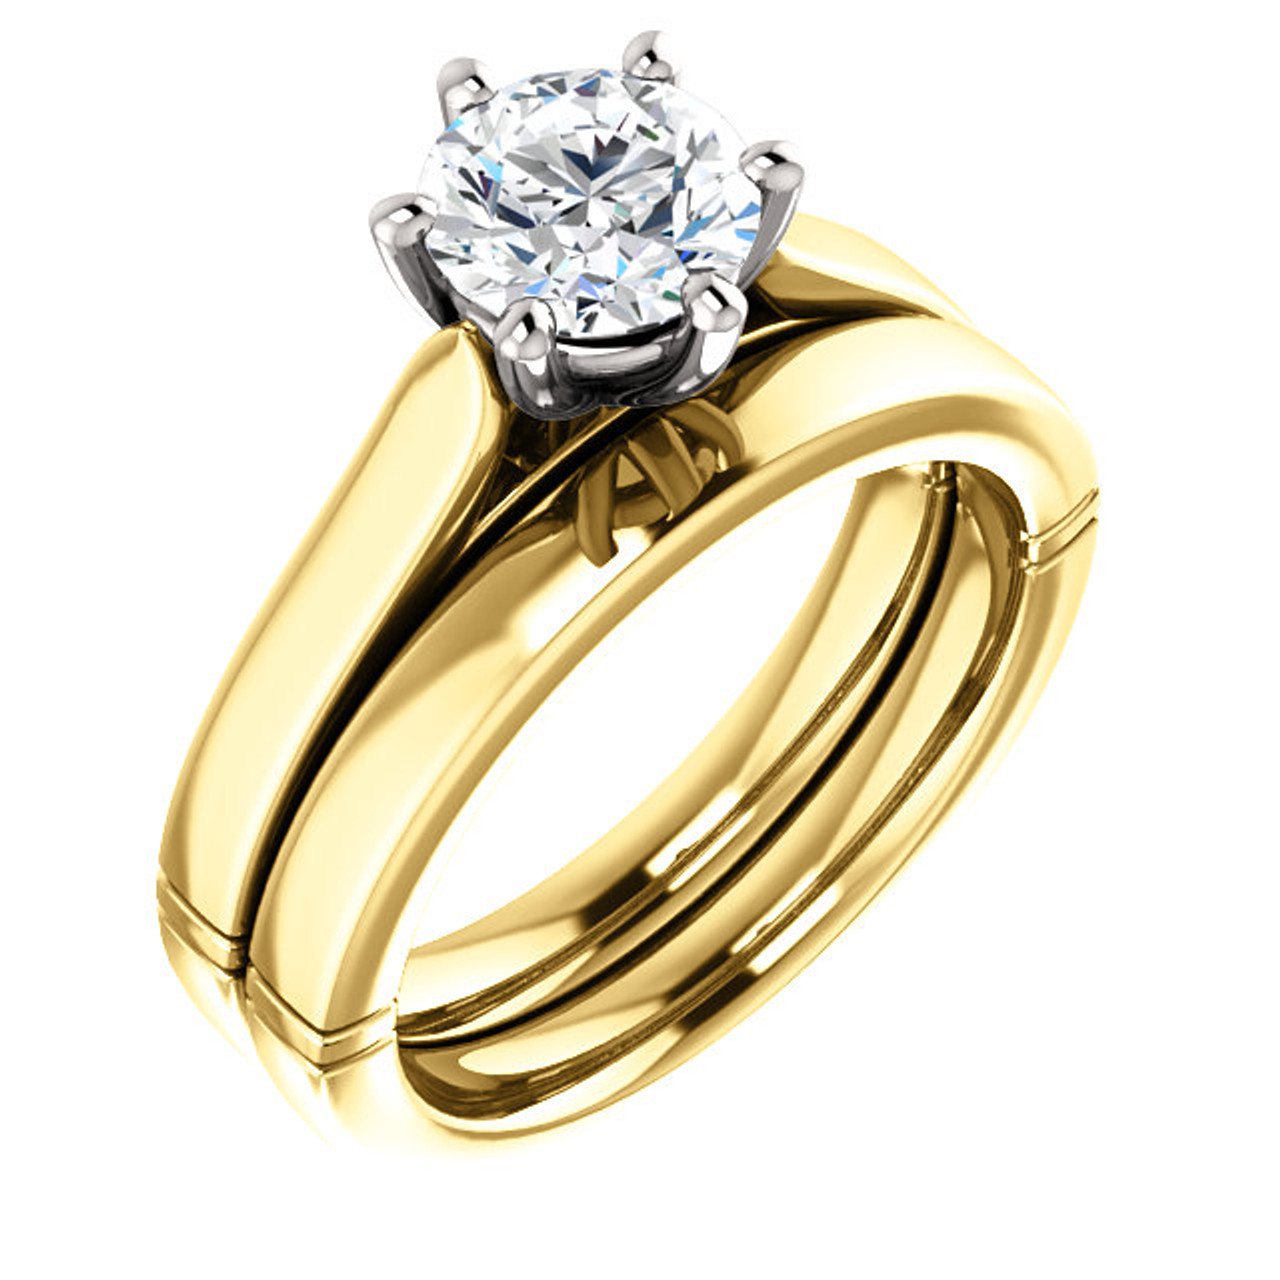 Judith Cubic Zirconia Solitaire Engagement Ring Matching Band In Solid 14 Karat Gold